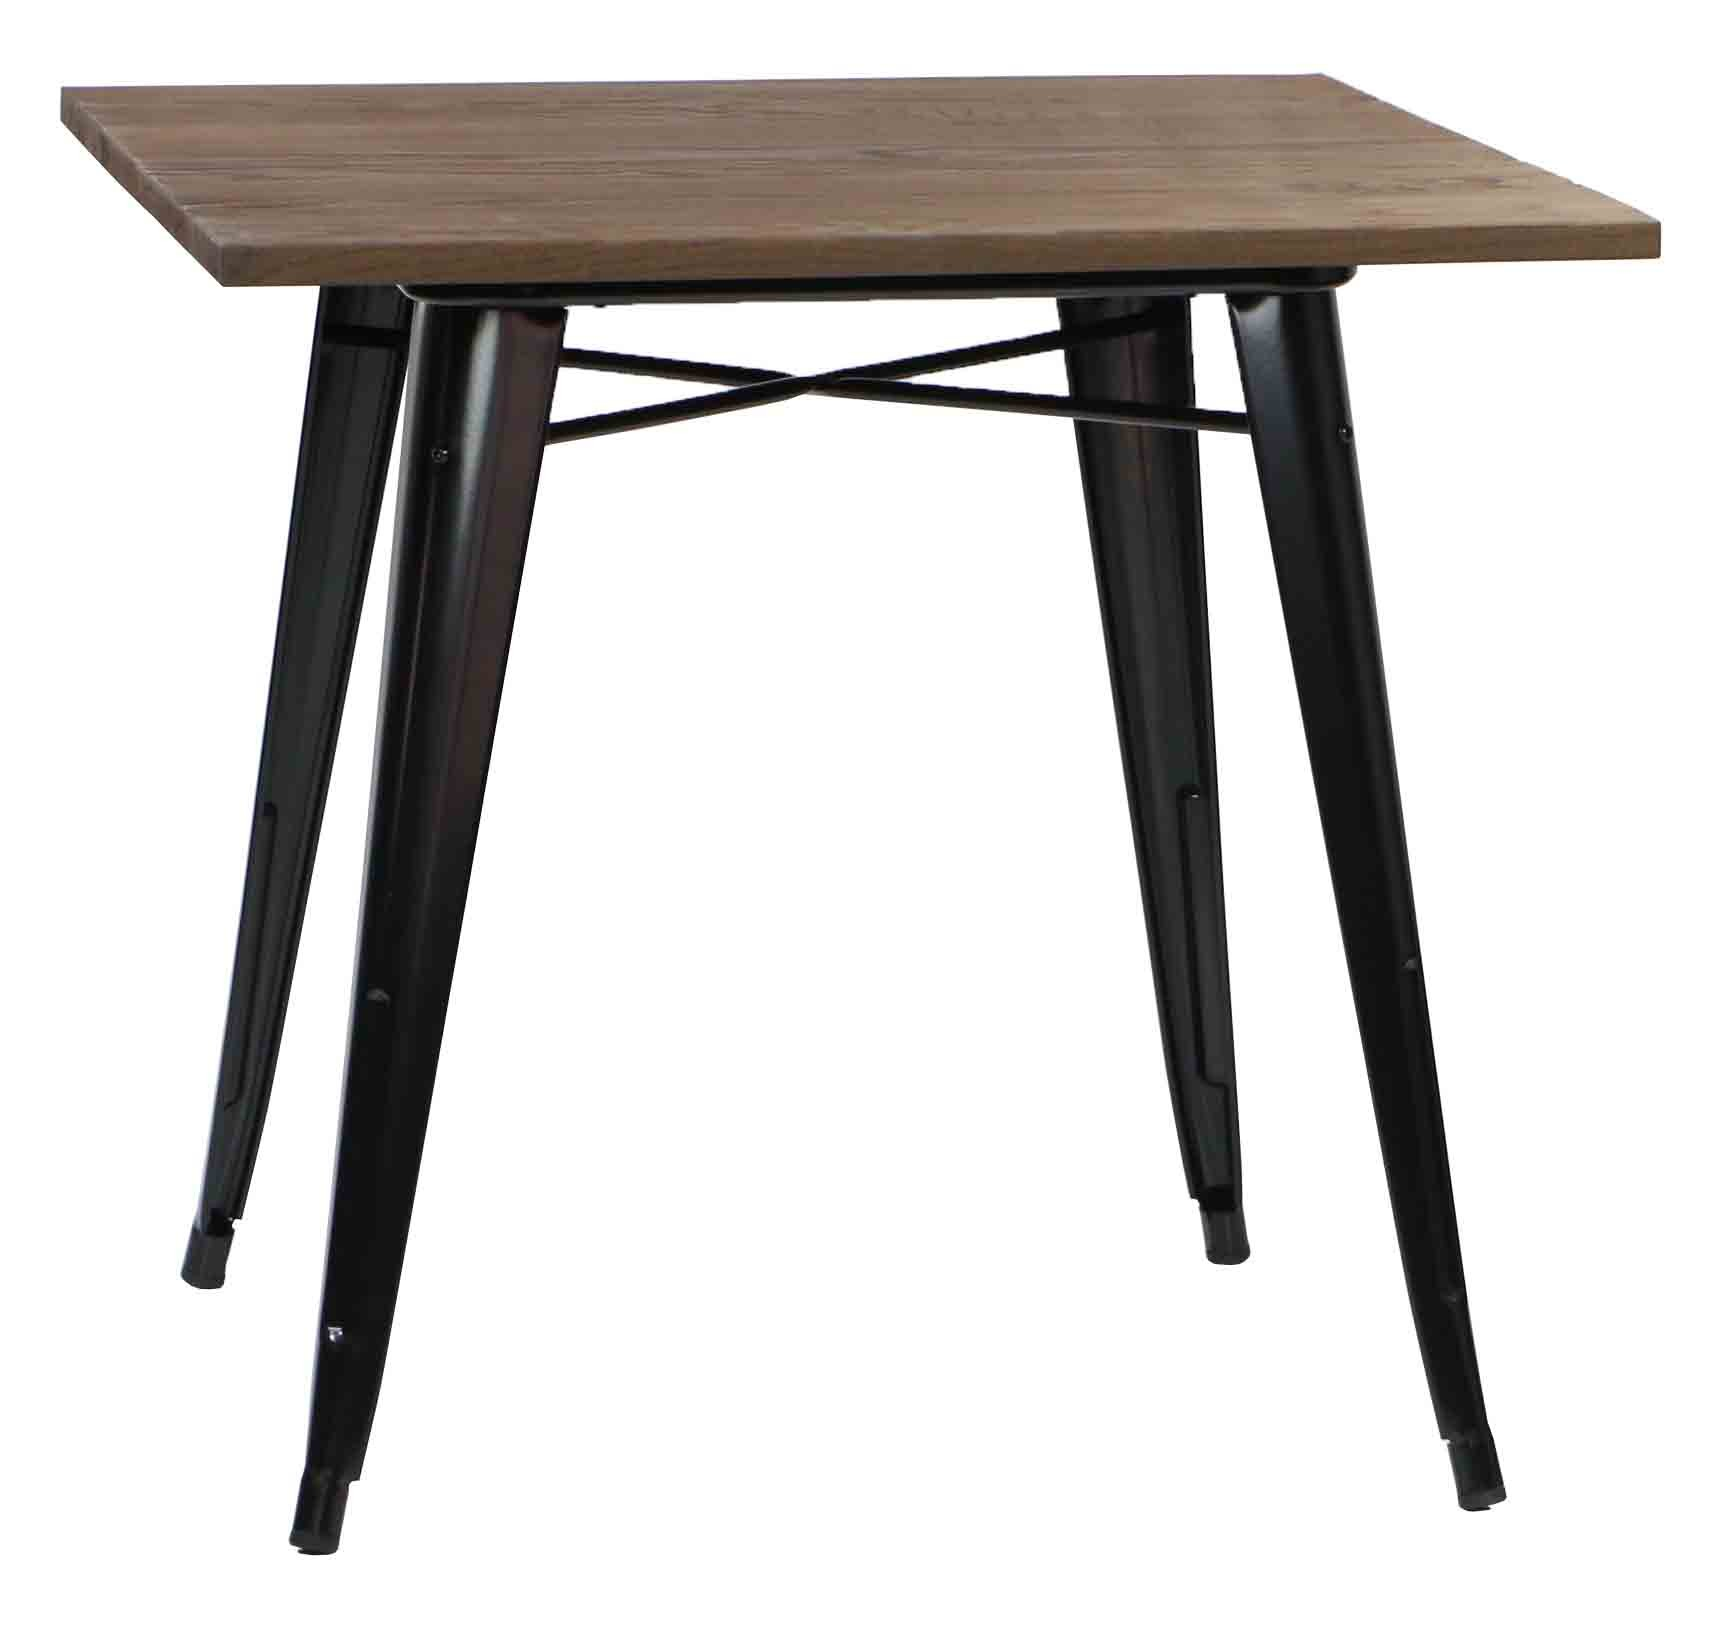 Charmant Modus Metal Dining Table With Wood Top Black